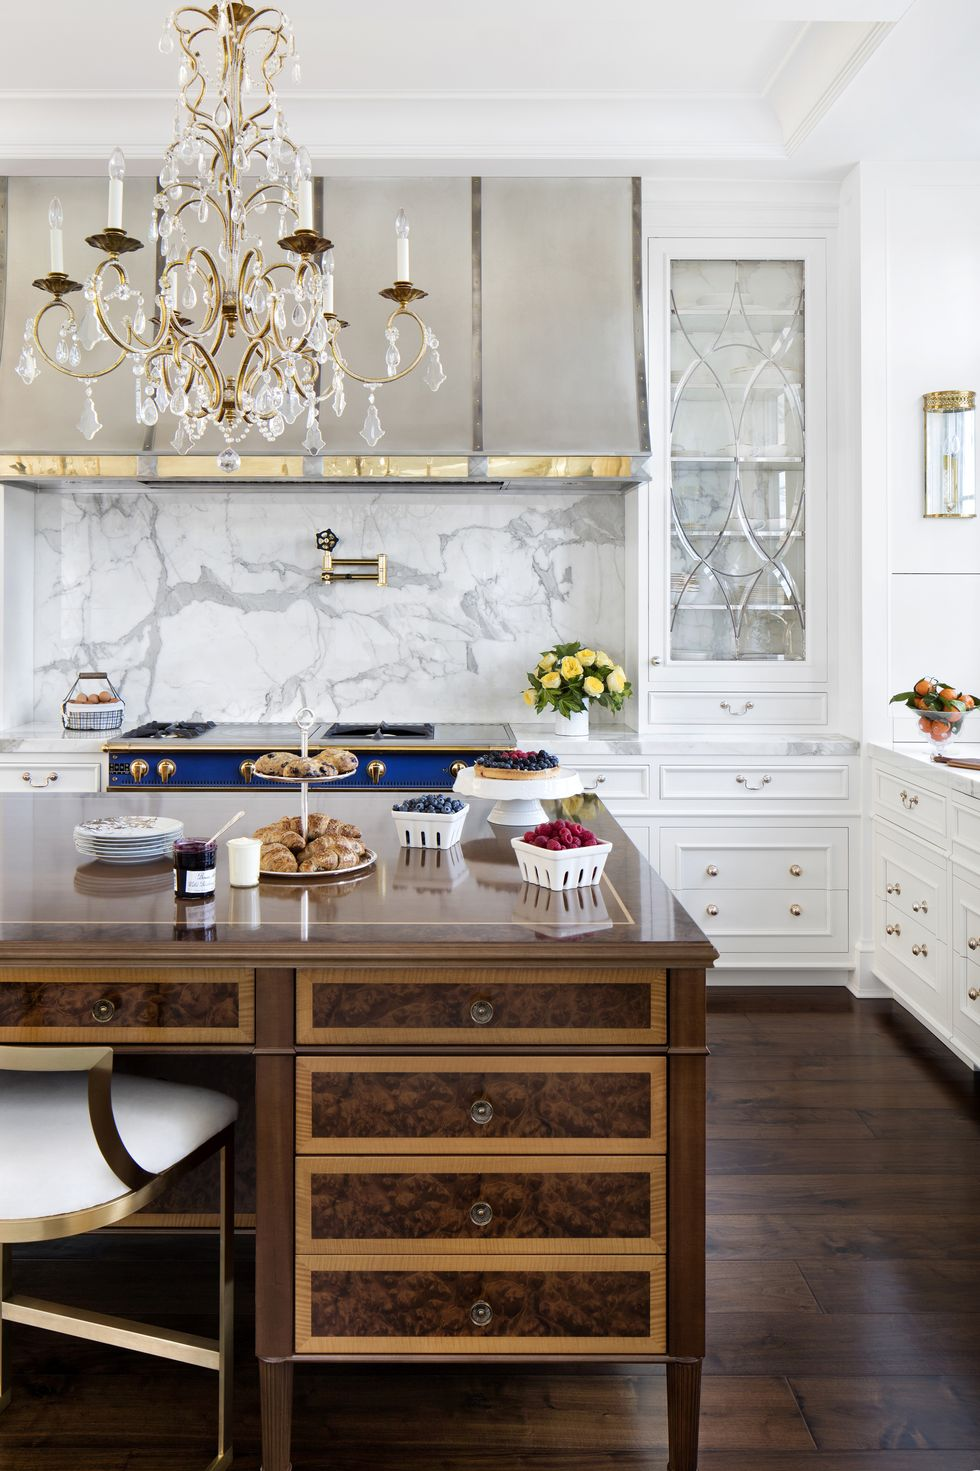 English style kitchen with acrylic countertop and bushels of berries